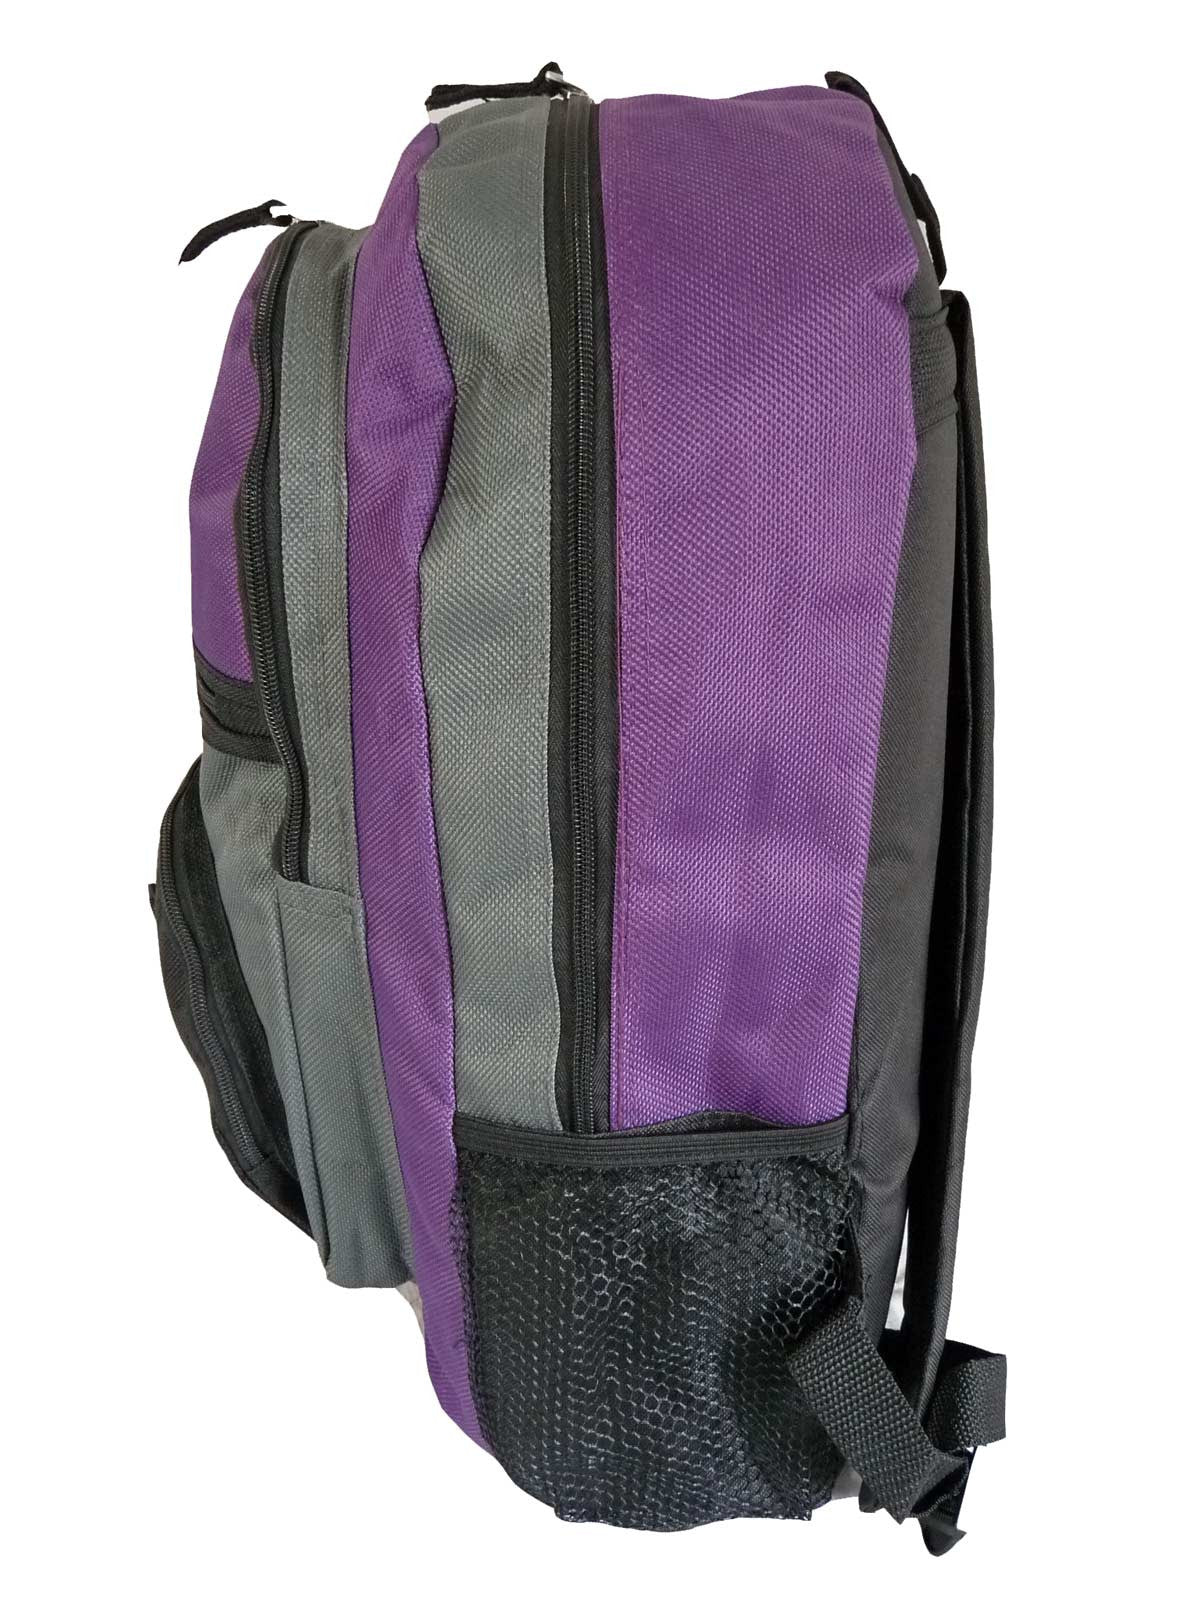 Kids School Bags RL37M Purple S Side View